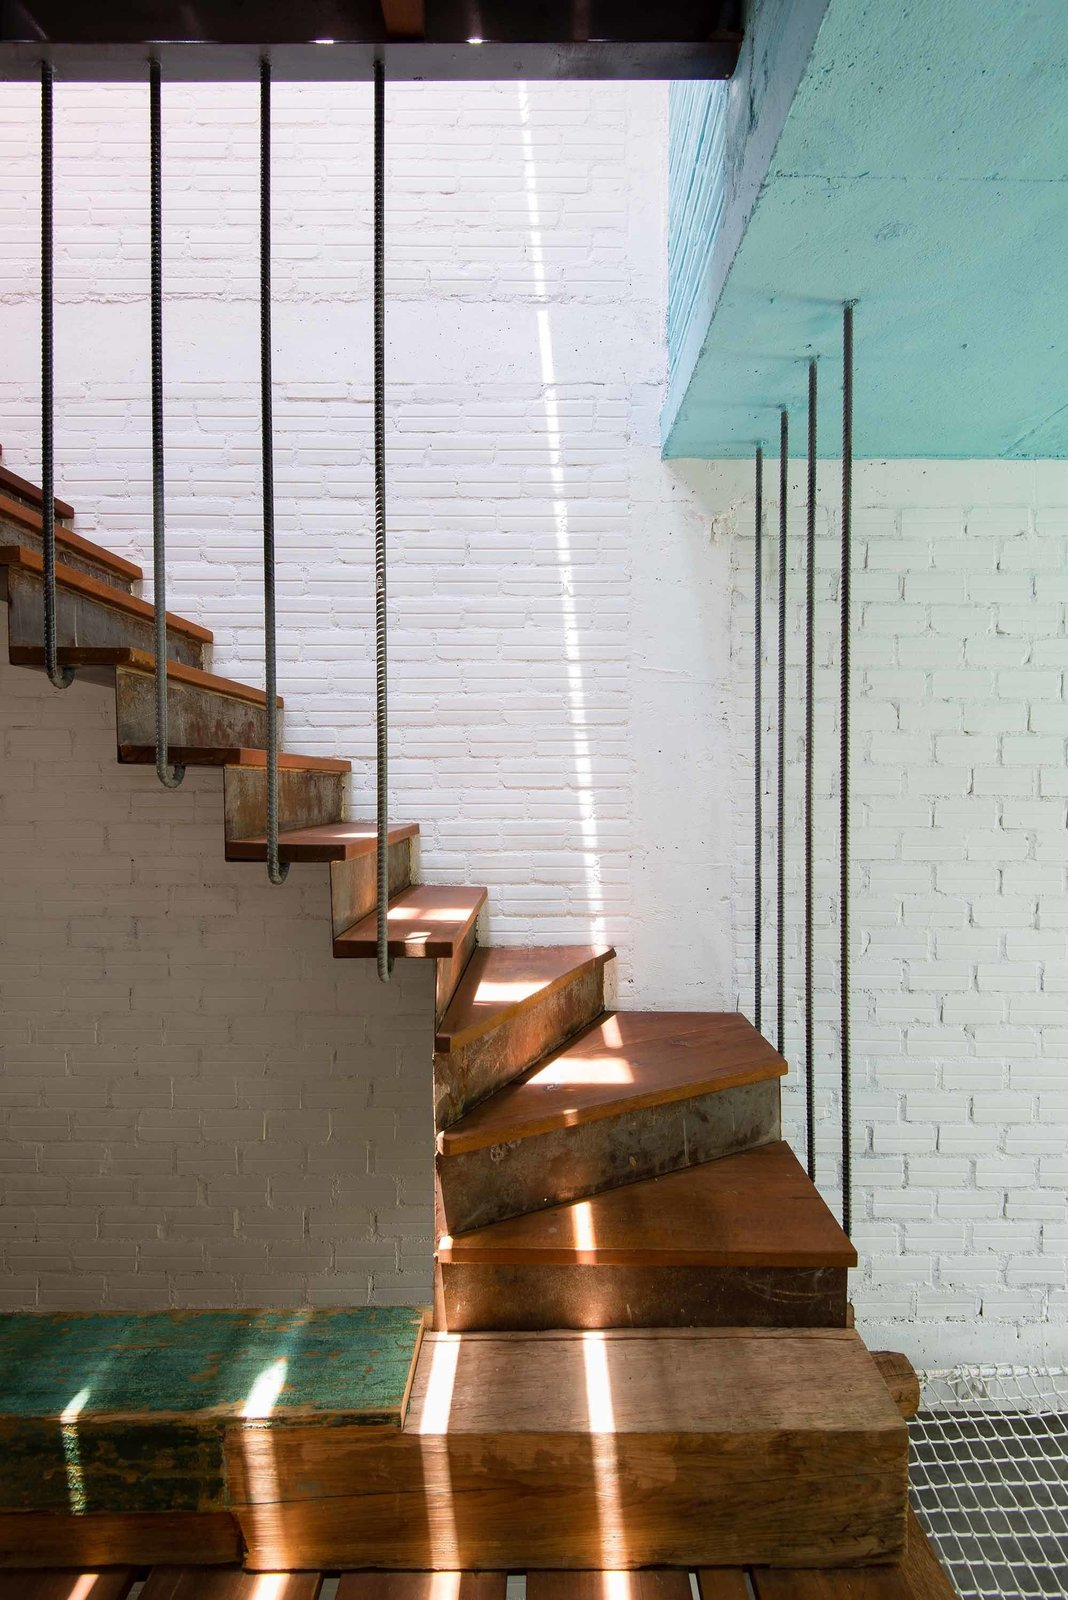 Six staircases, many open to outside light, serve as pathways between the private interior spaces.